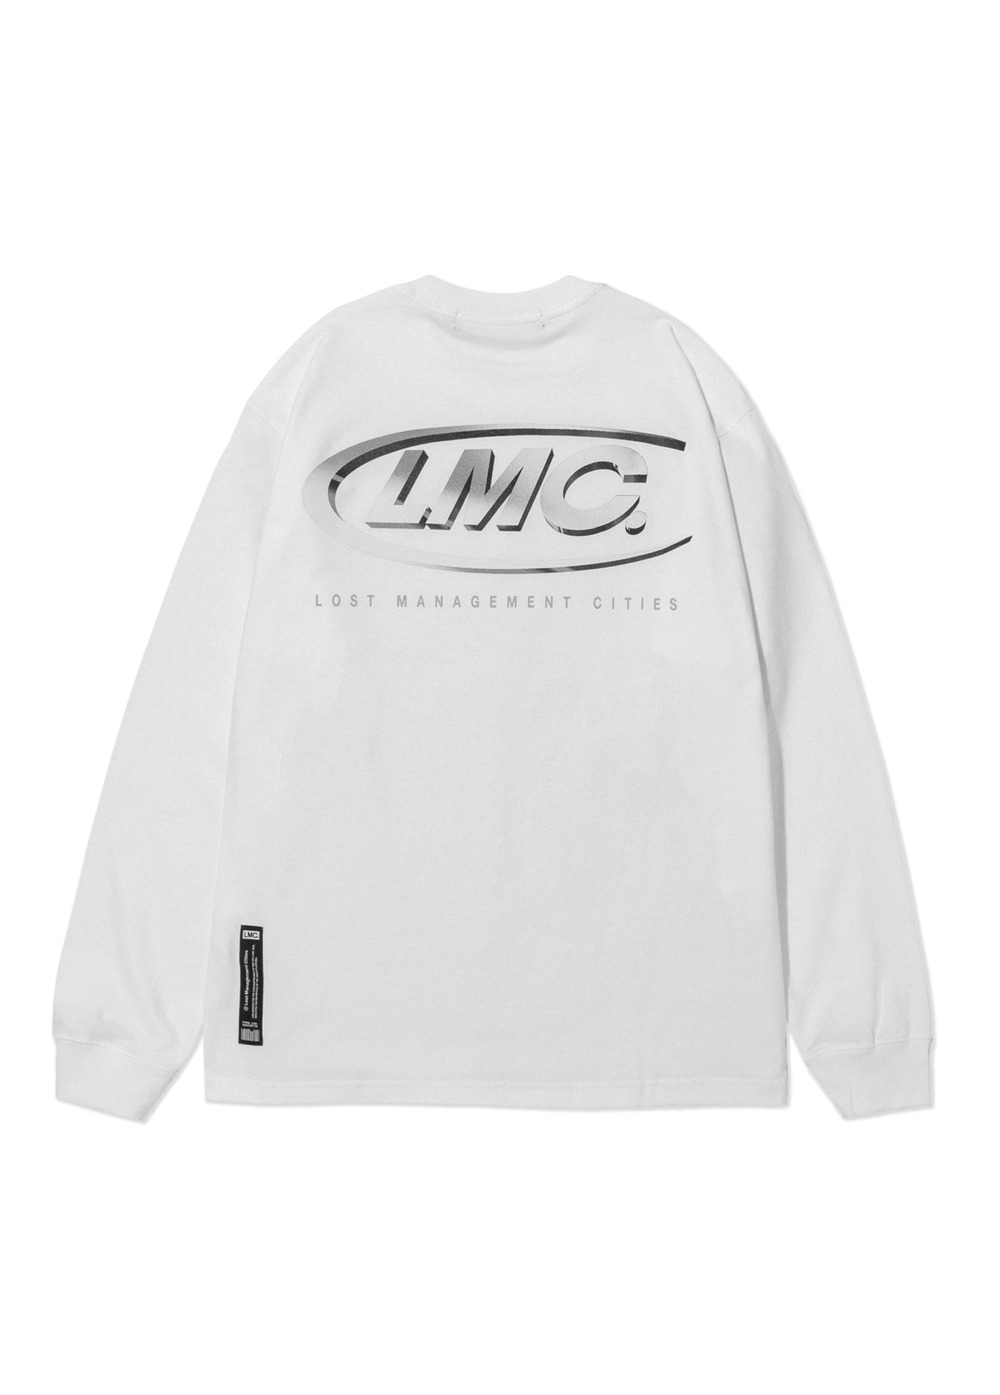 LMC 3D CO LONG SLV TEE white